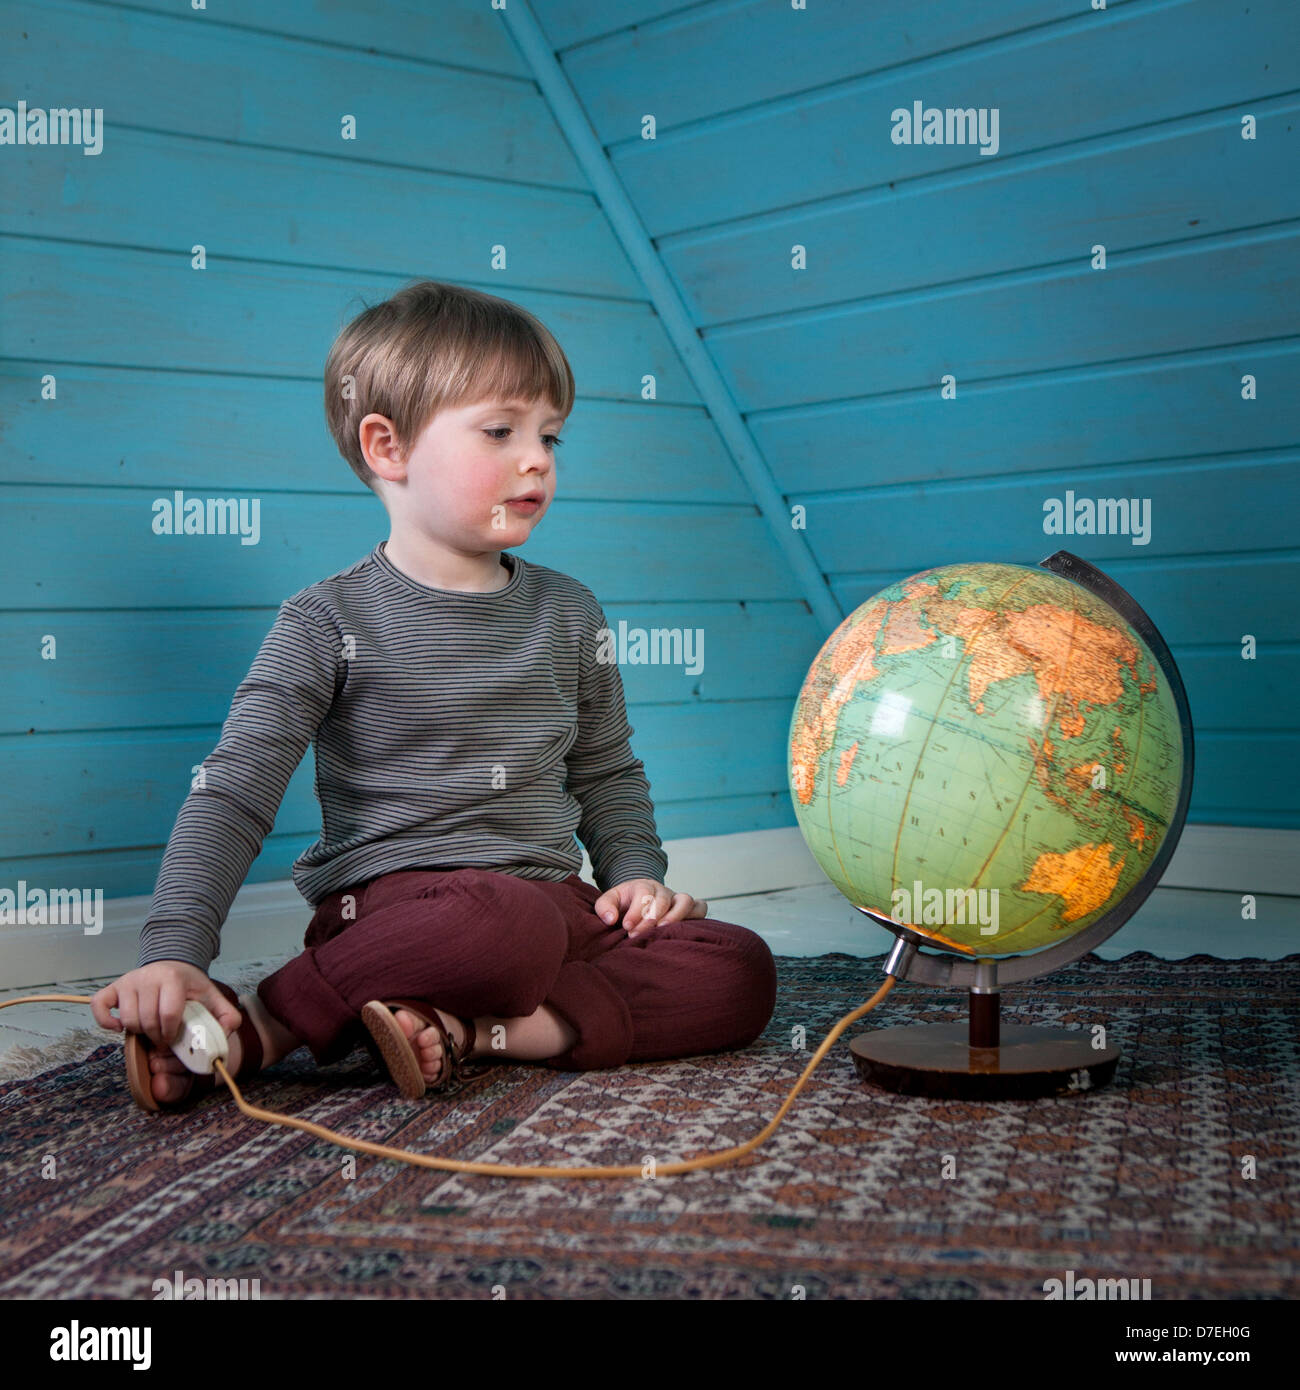 A young child looks at a lit up globe thinking about far away places sitting in a cosy attic room at home light - Stock Image